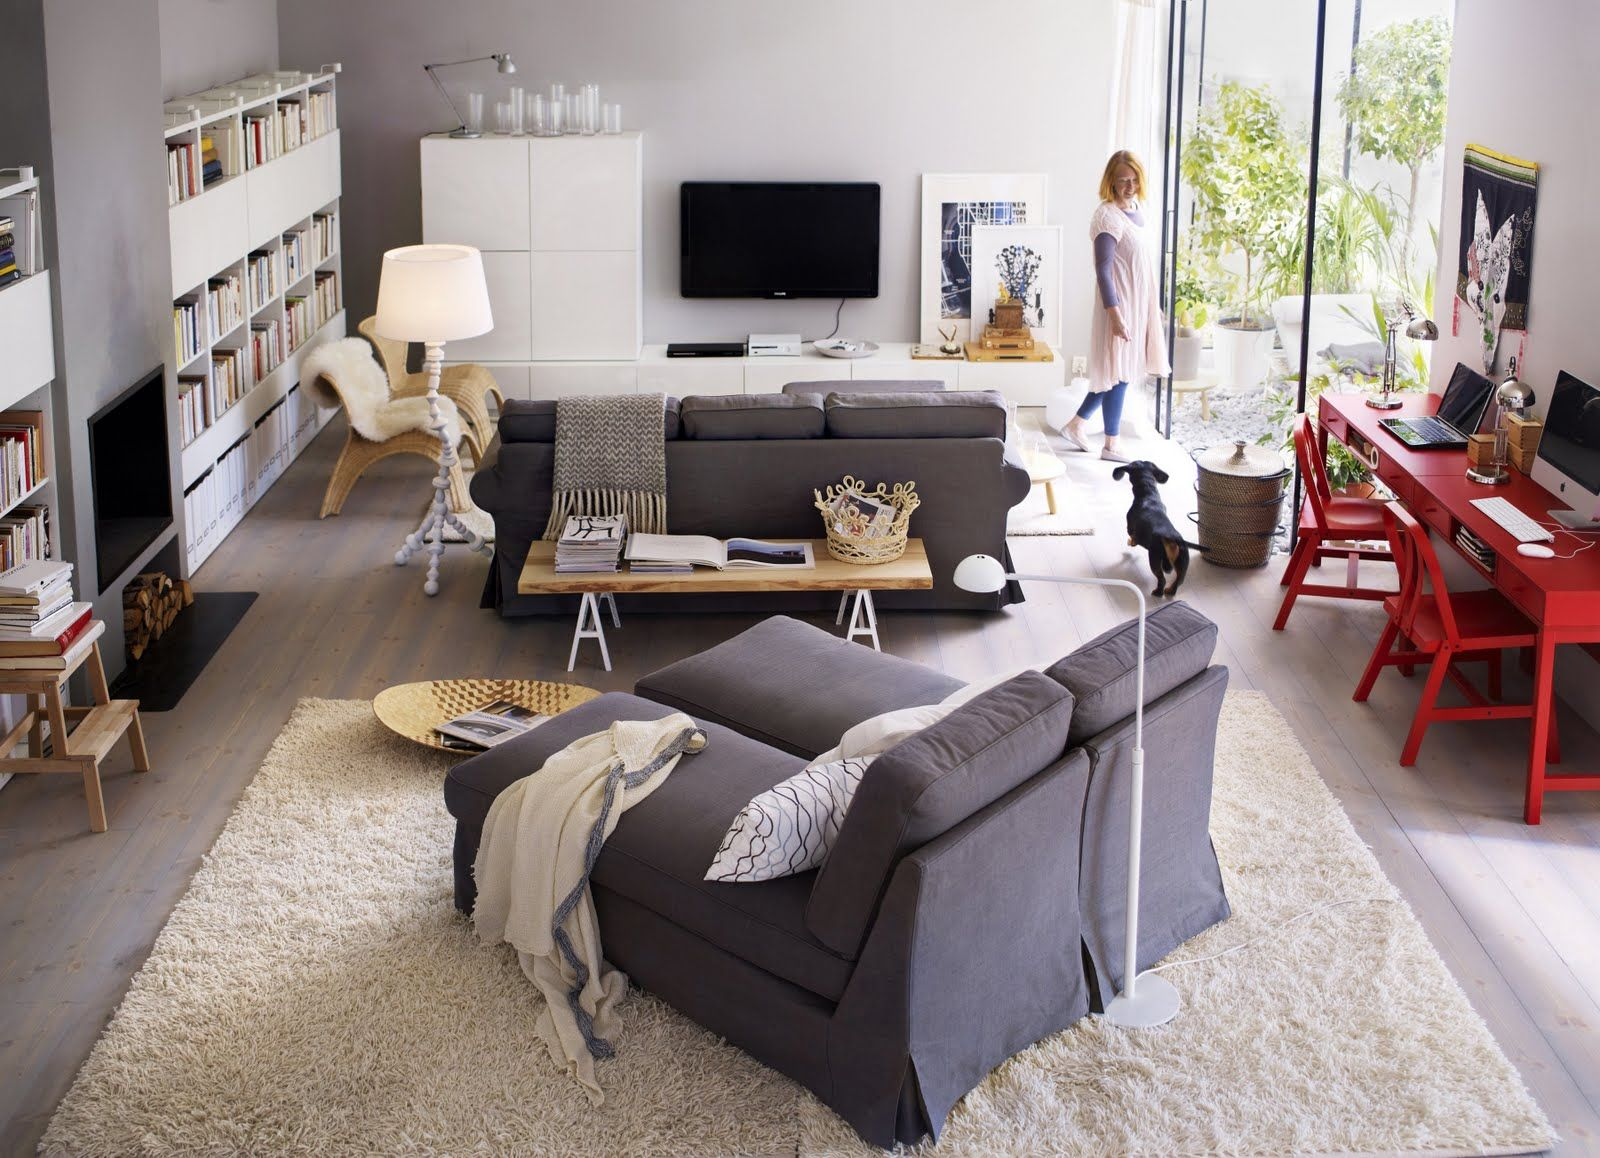 kivik sofa nothing less for cocooning with my husband in. Black Bedroom Furniture Sets. Home Design Ideas